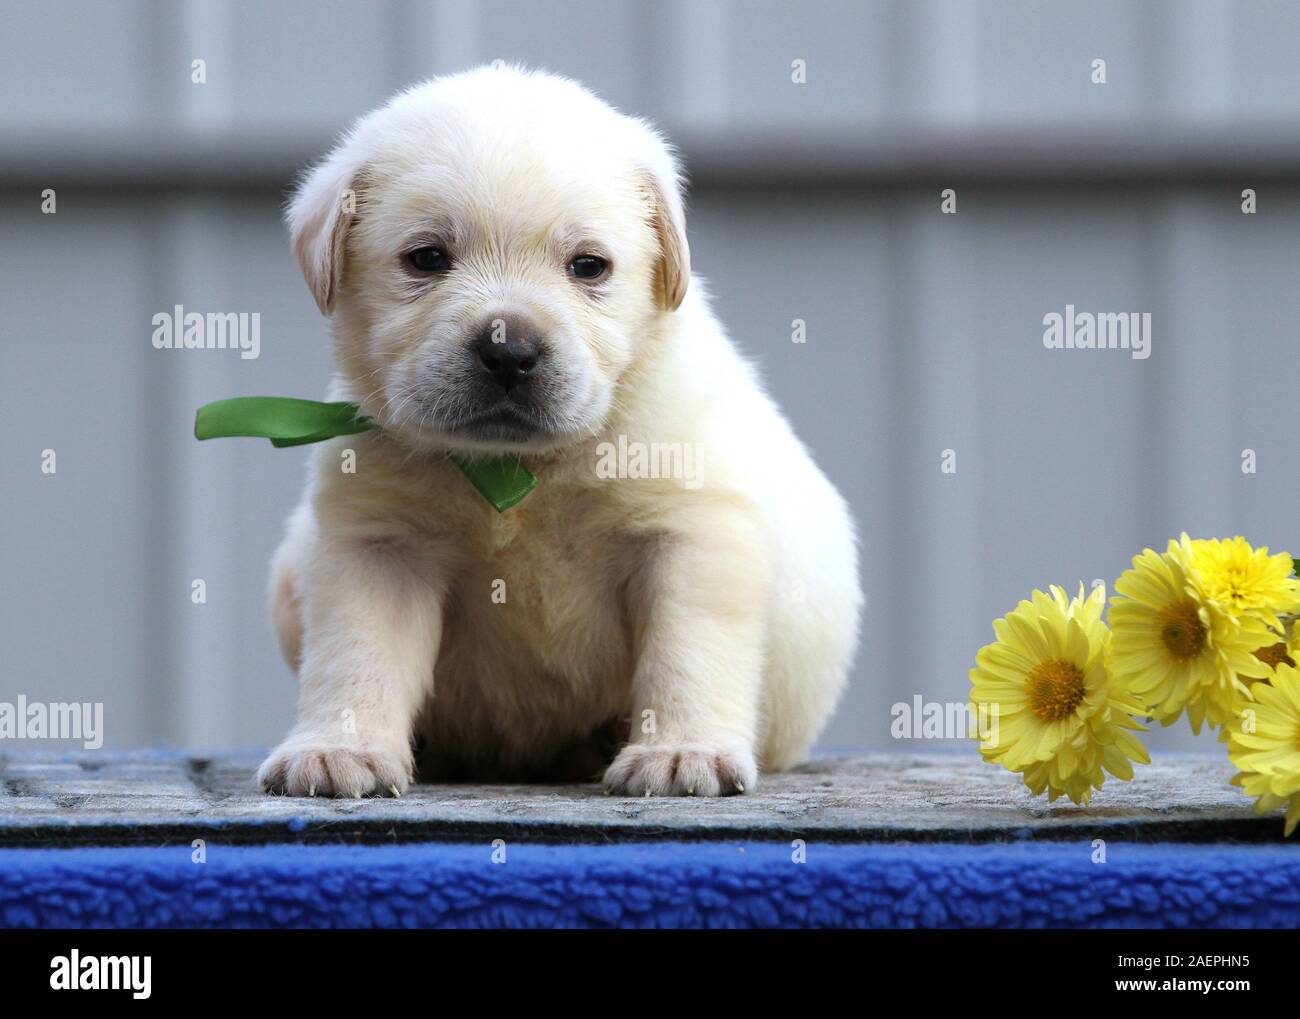 A Nice Cute Little Labrador Puppy On A Blue Background Stock Photo Alamy